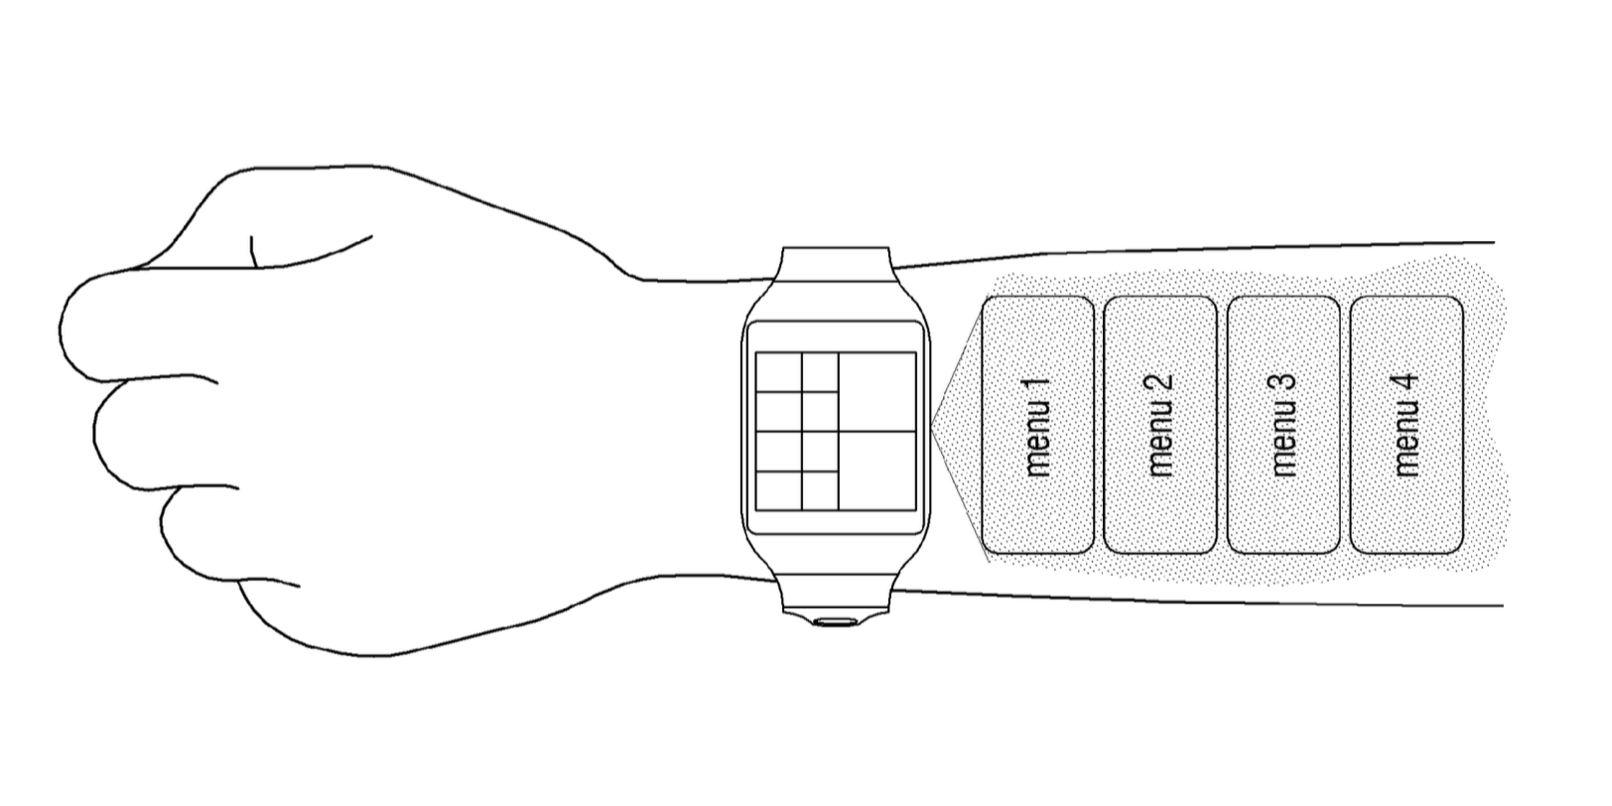 samsung-patent-interface